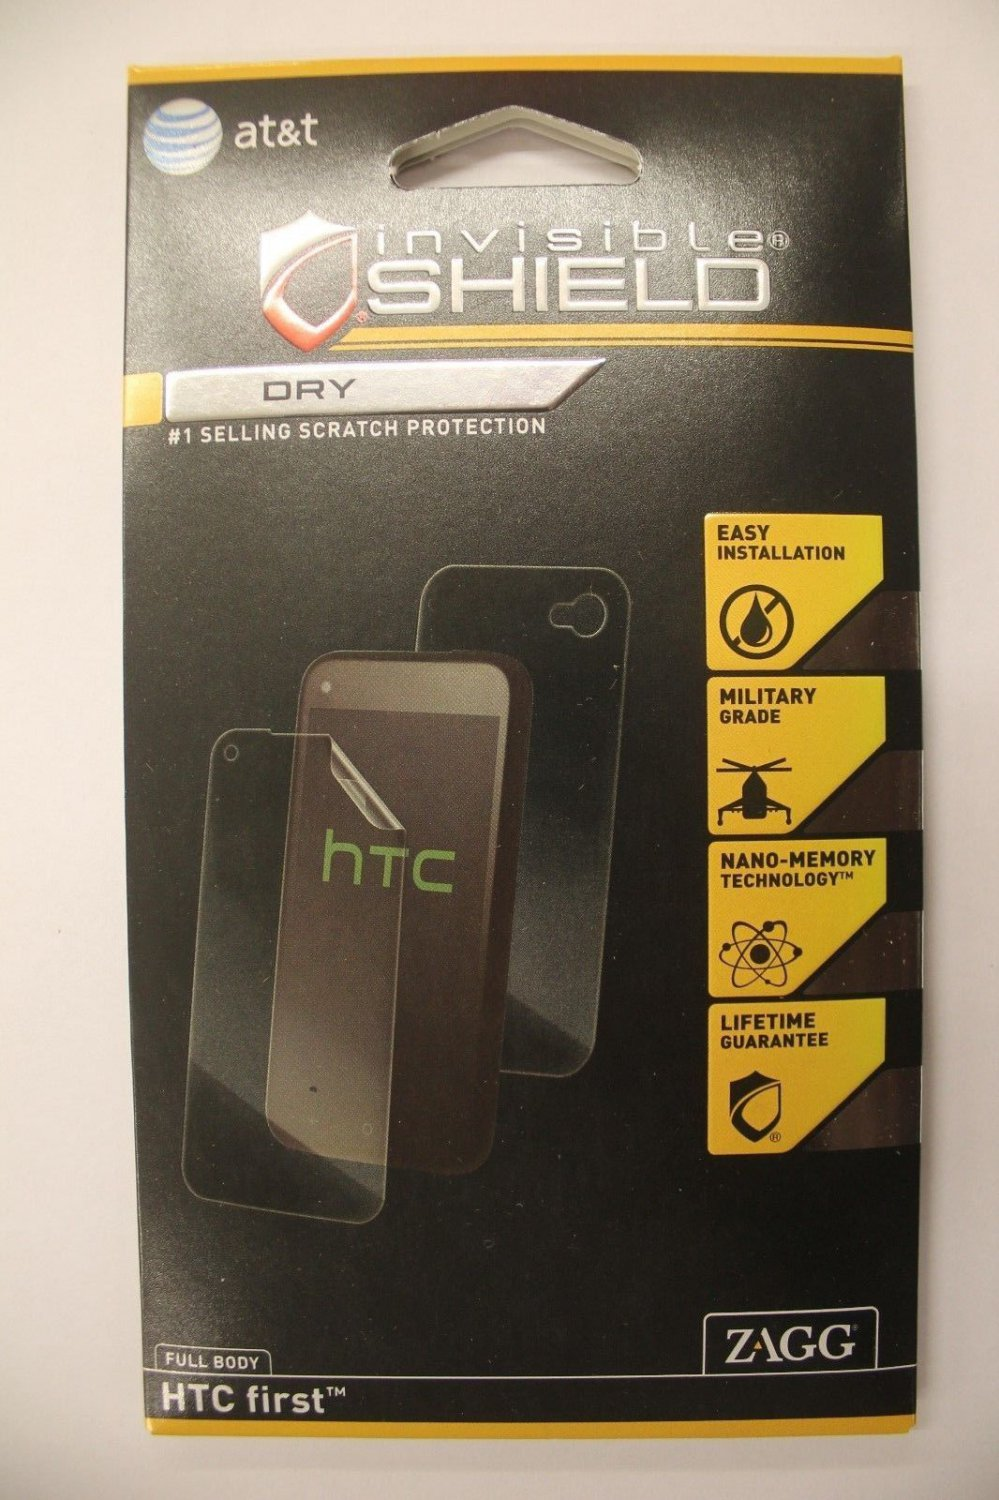 Zagg invisible Shield Dry Full Body HTC first Screen Protection Scratch Proof